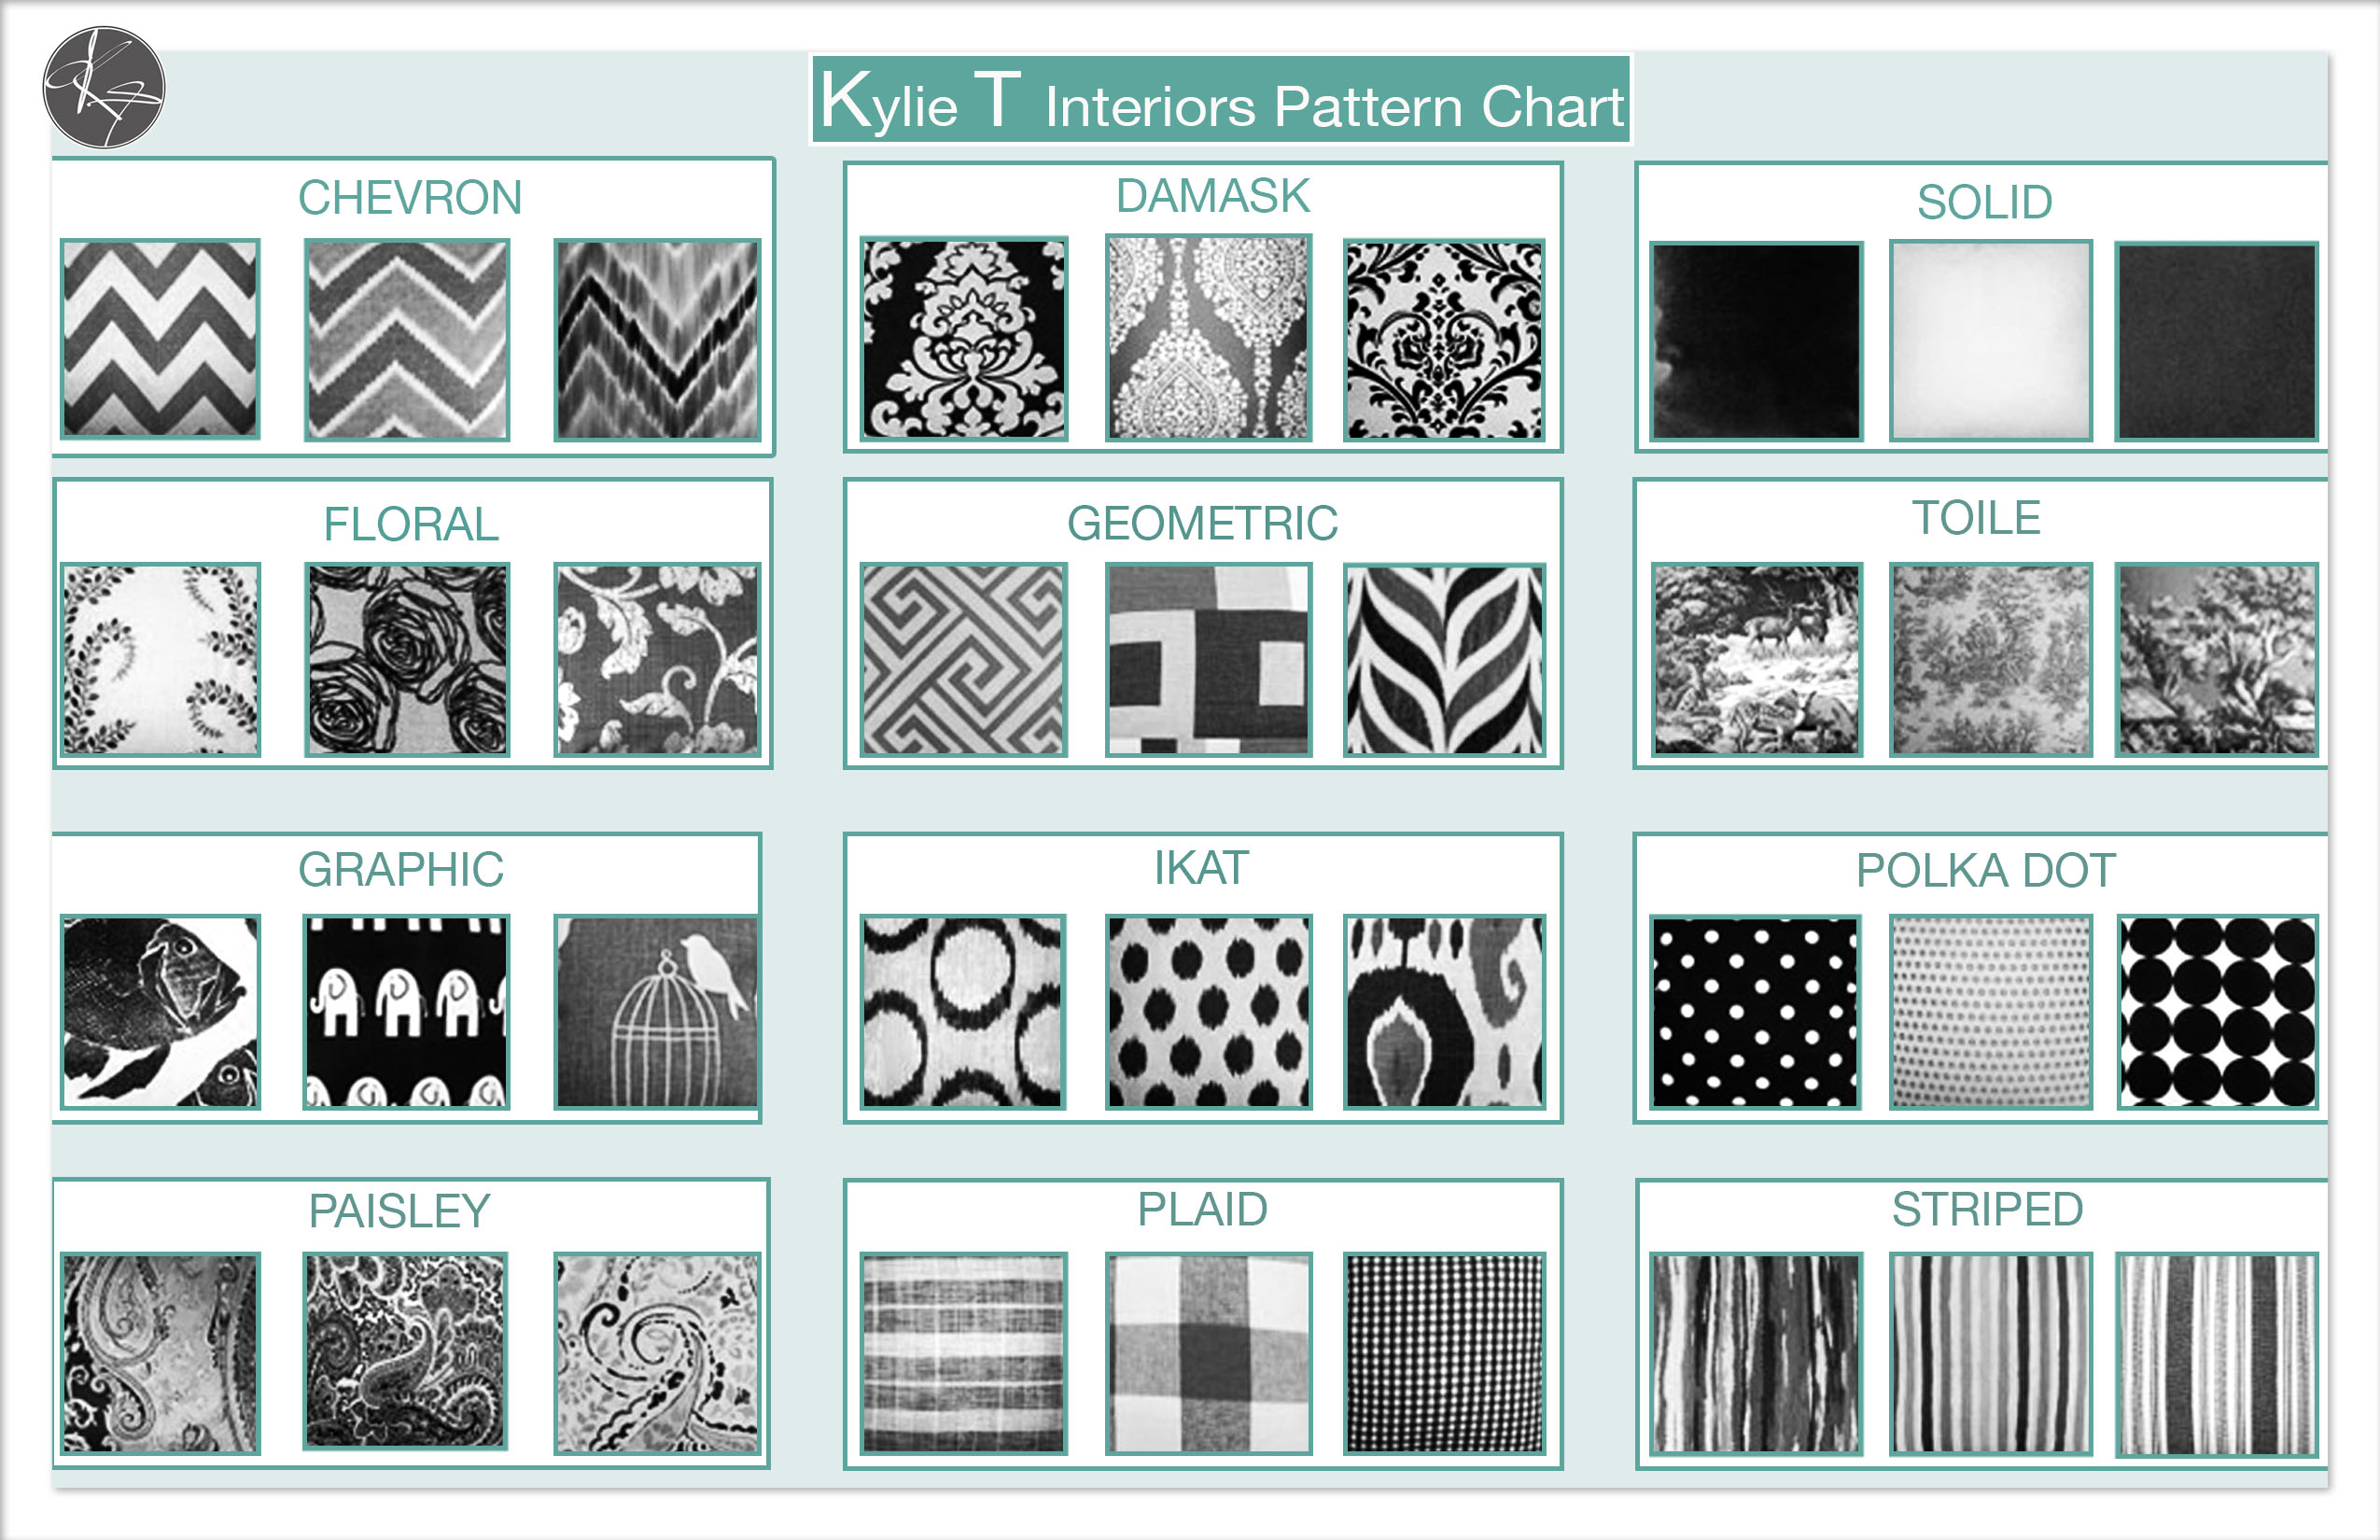 Kylie t Interiors pattern chart